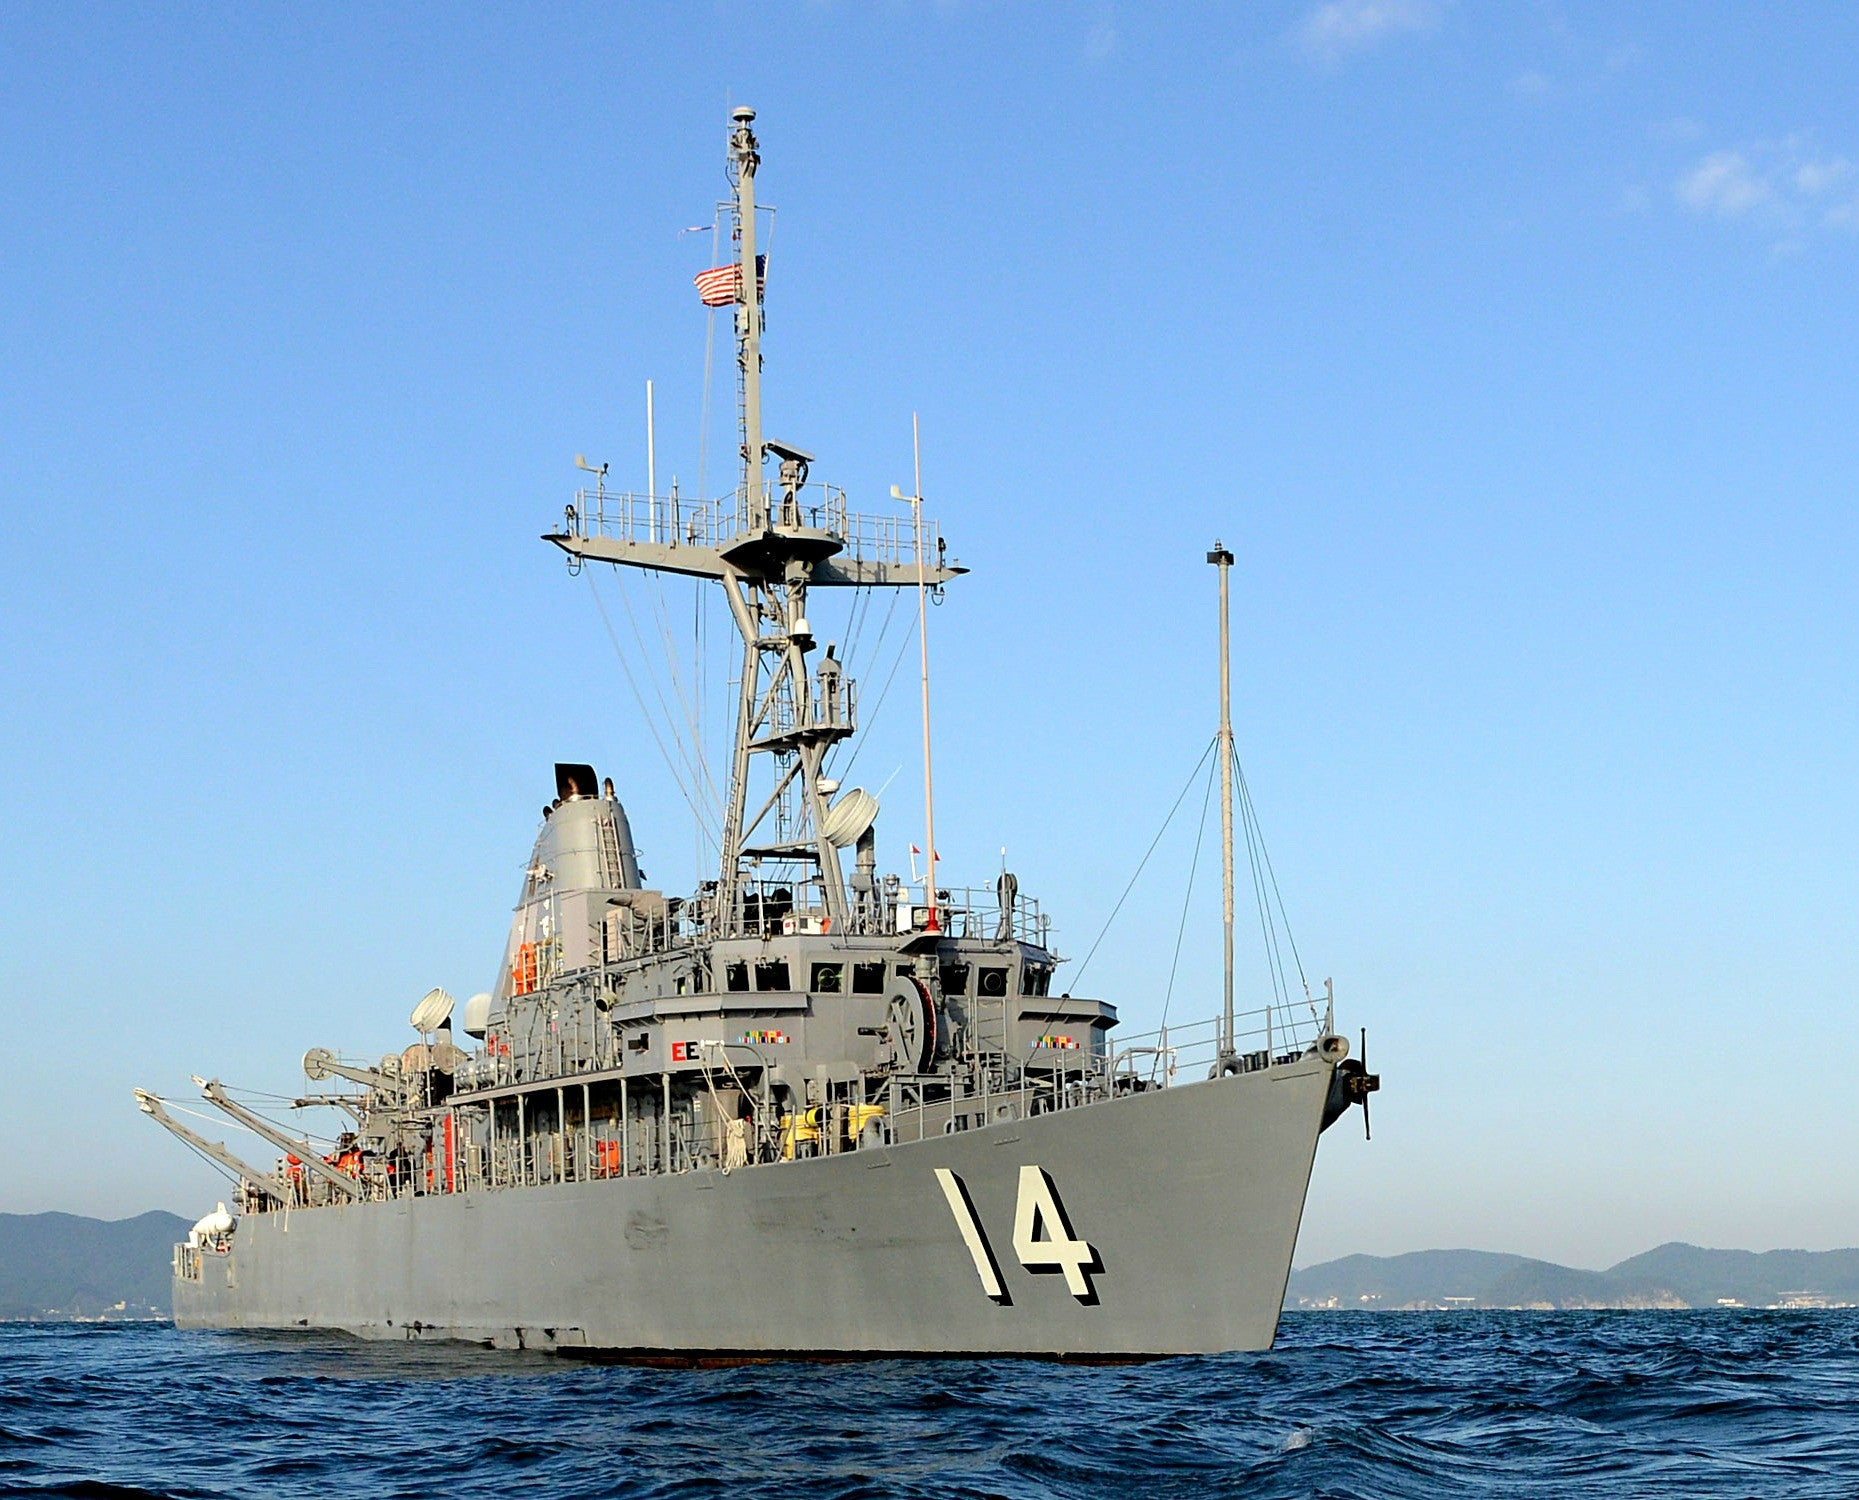 "Mine Countermeasure Ship USS Chief MCM-14 off the Korean Peninsula October 23, 2014 - 8 x 10"" Photograph"